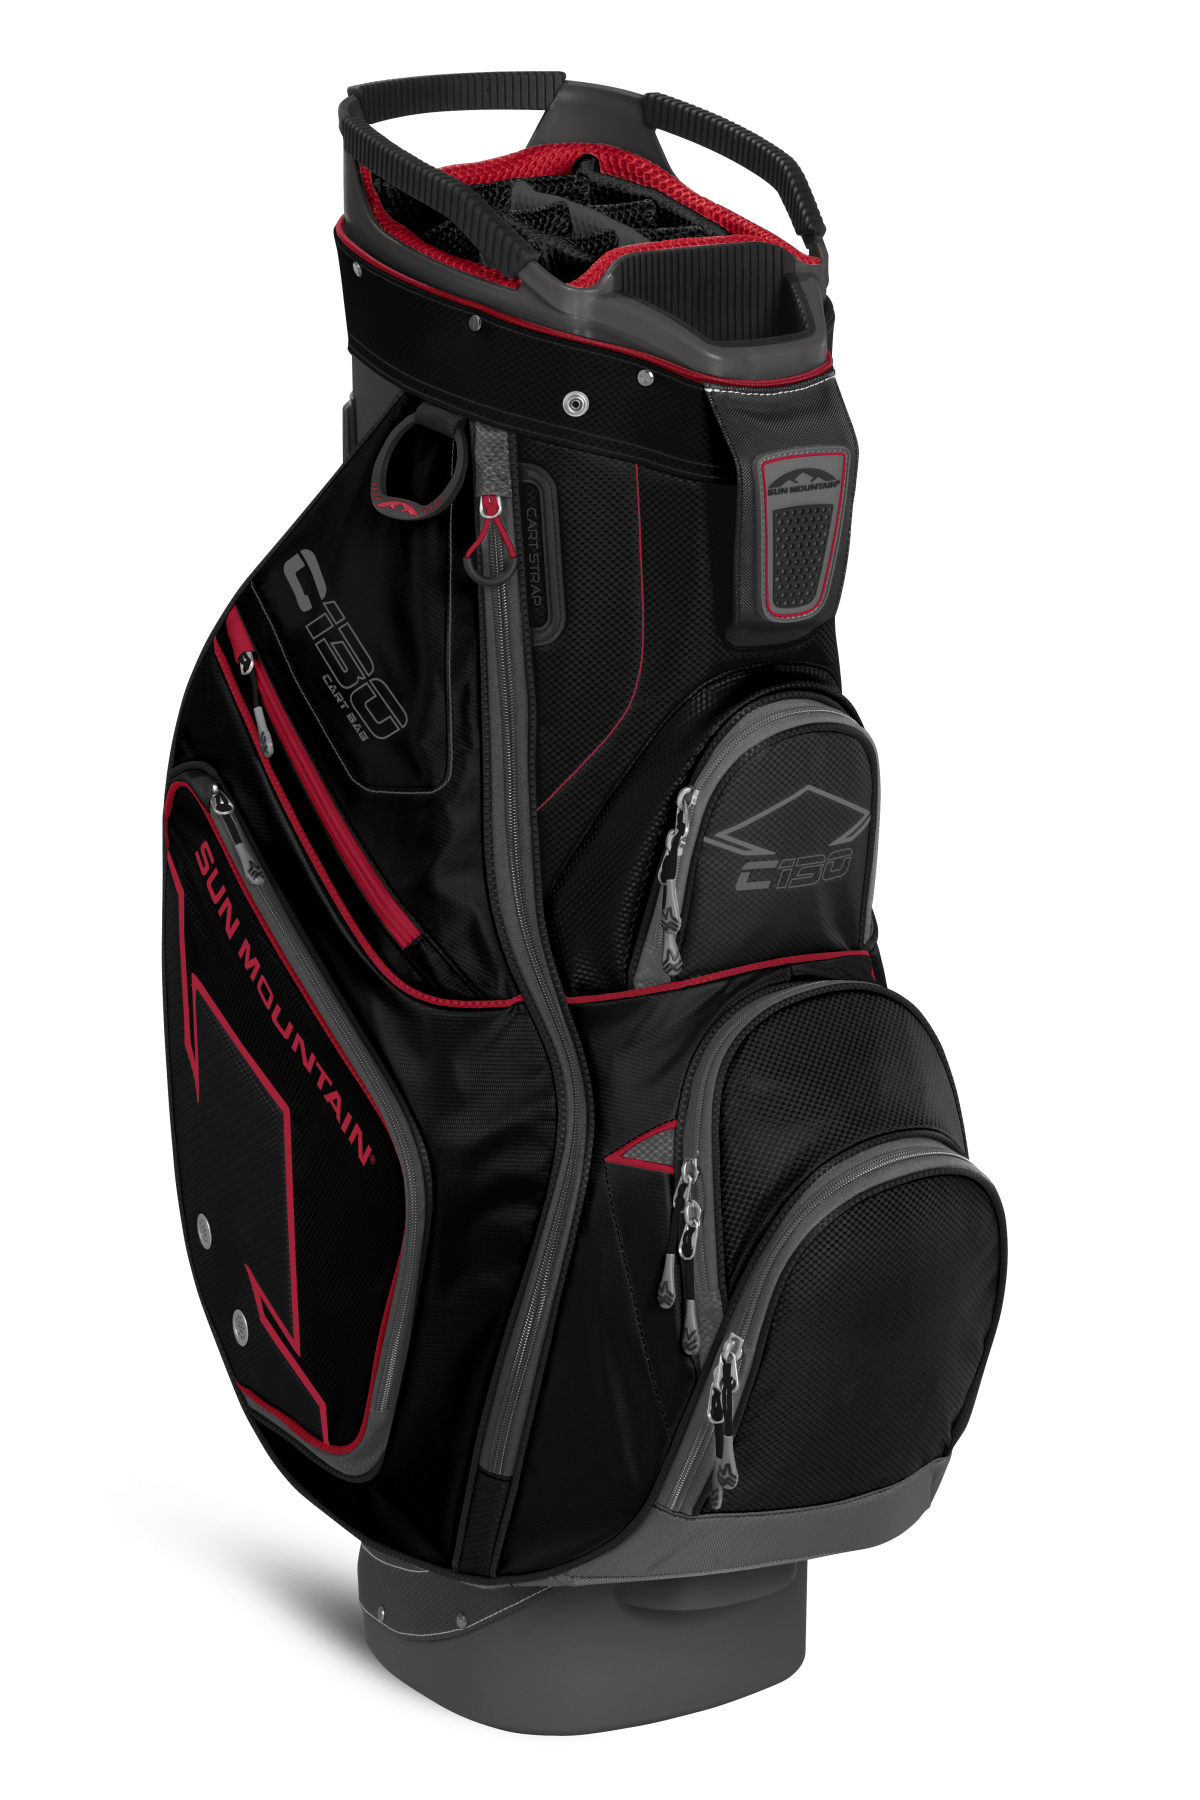 Sun Mountain C130 2017 Cart Bag From Golf Ski Warehouse